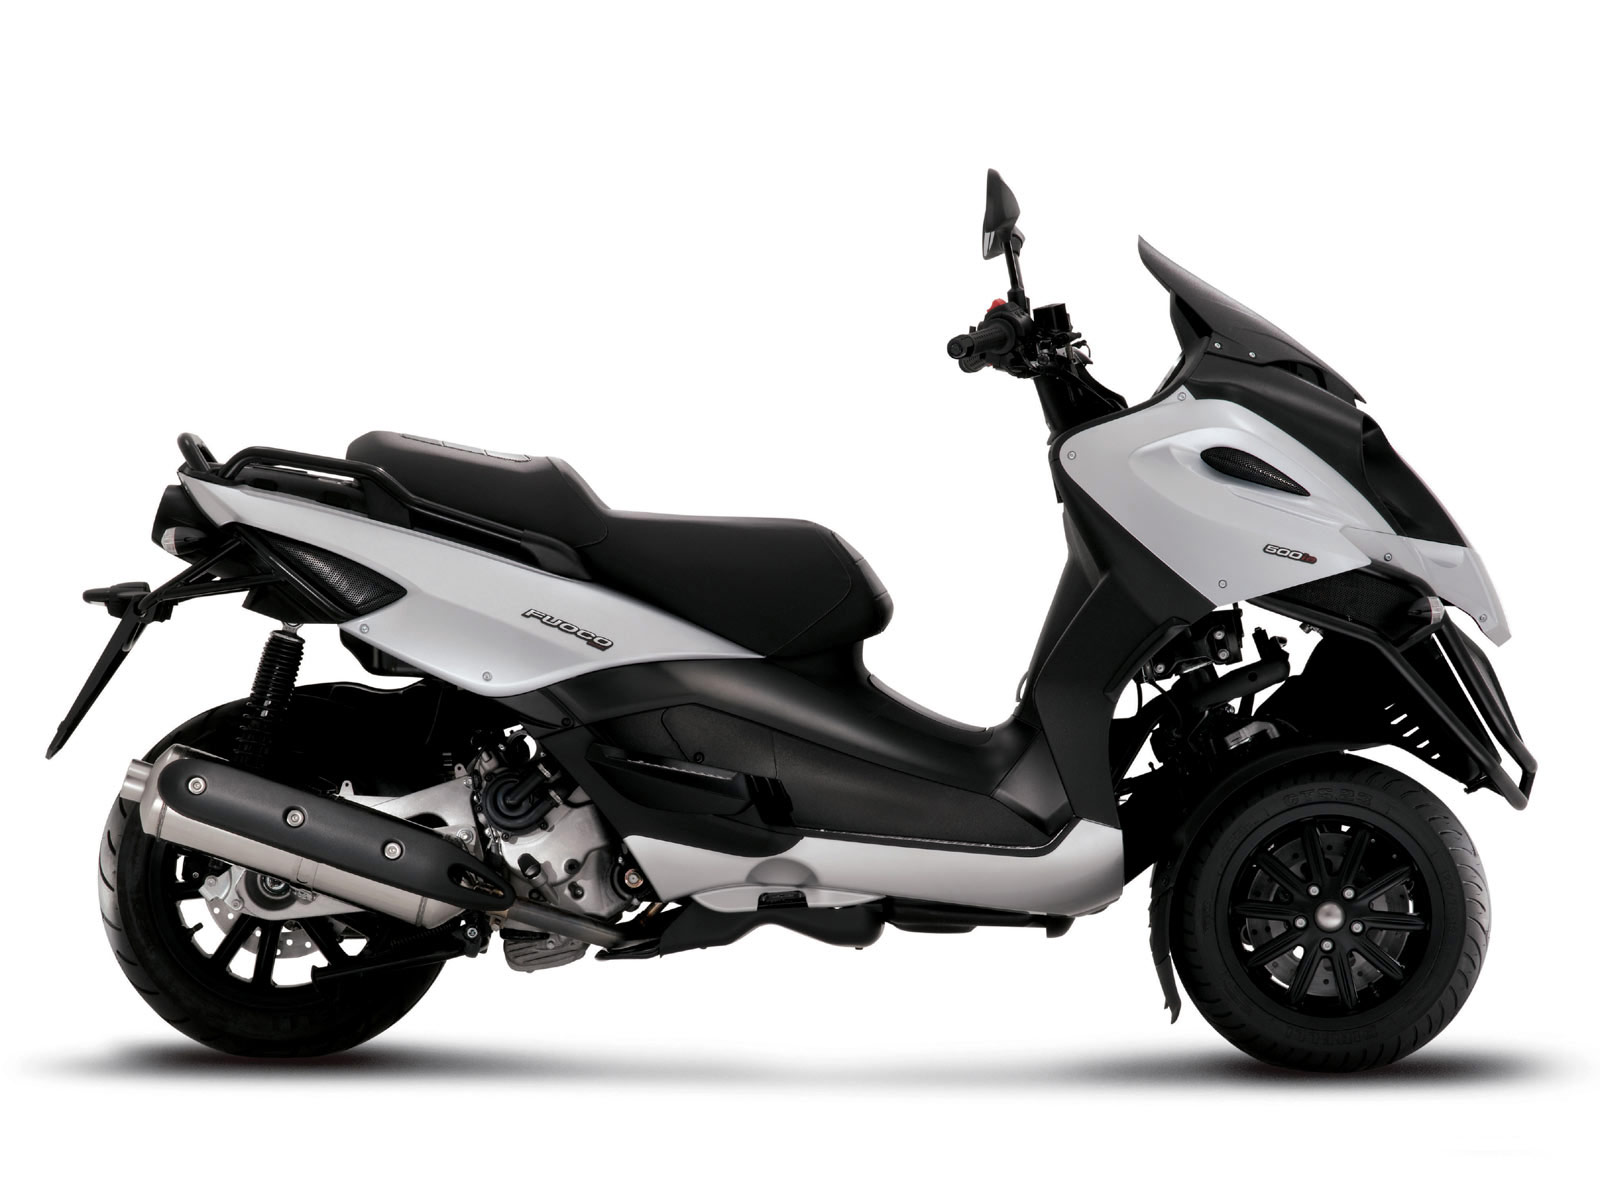 2007 gilera fuoco 500ie accident lawyers scooter pictures. Black Bedroom Furniture Sets. Home Design Ideas